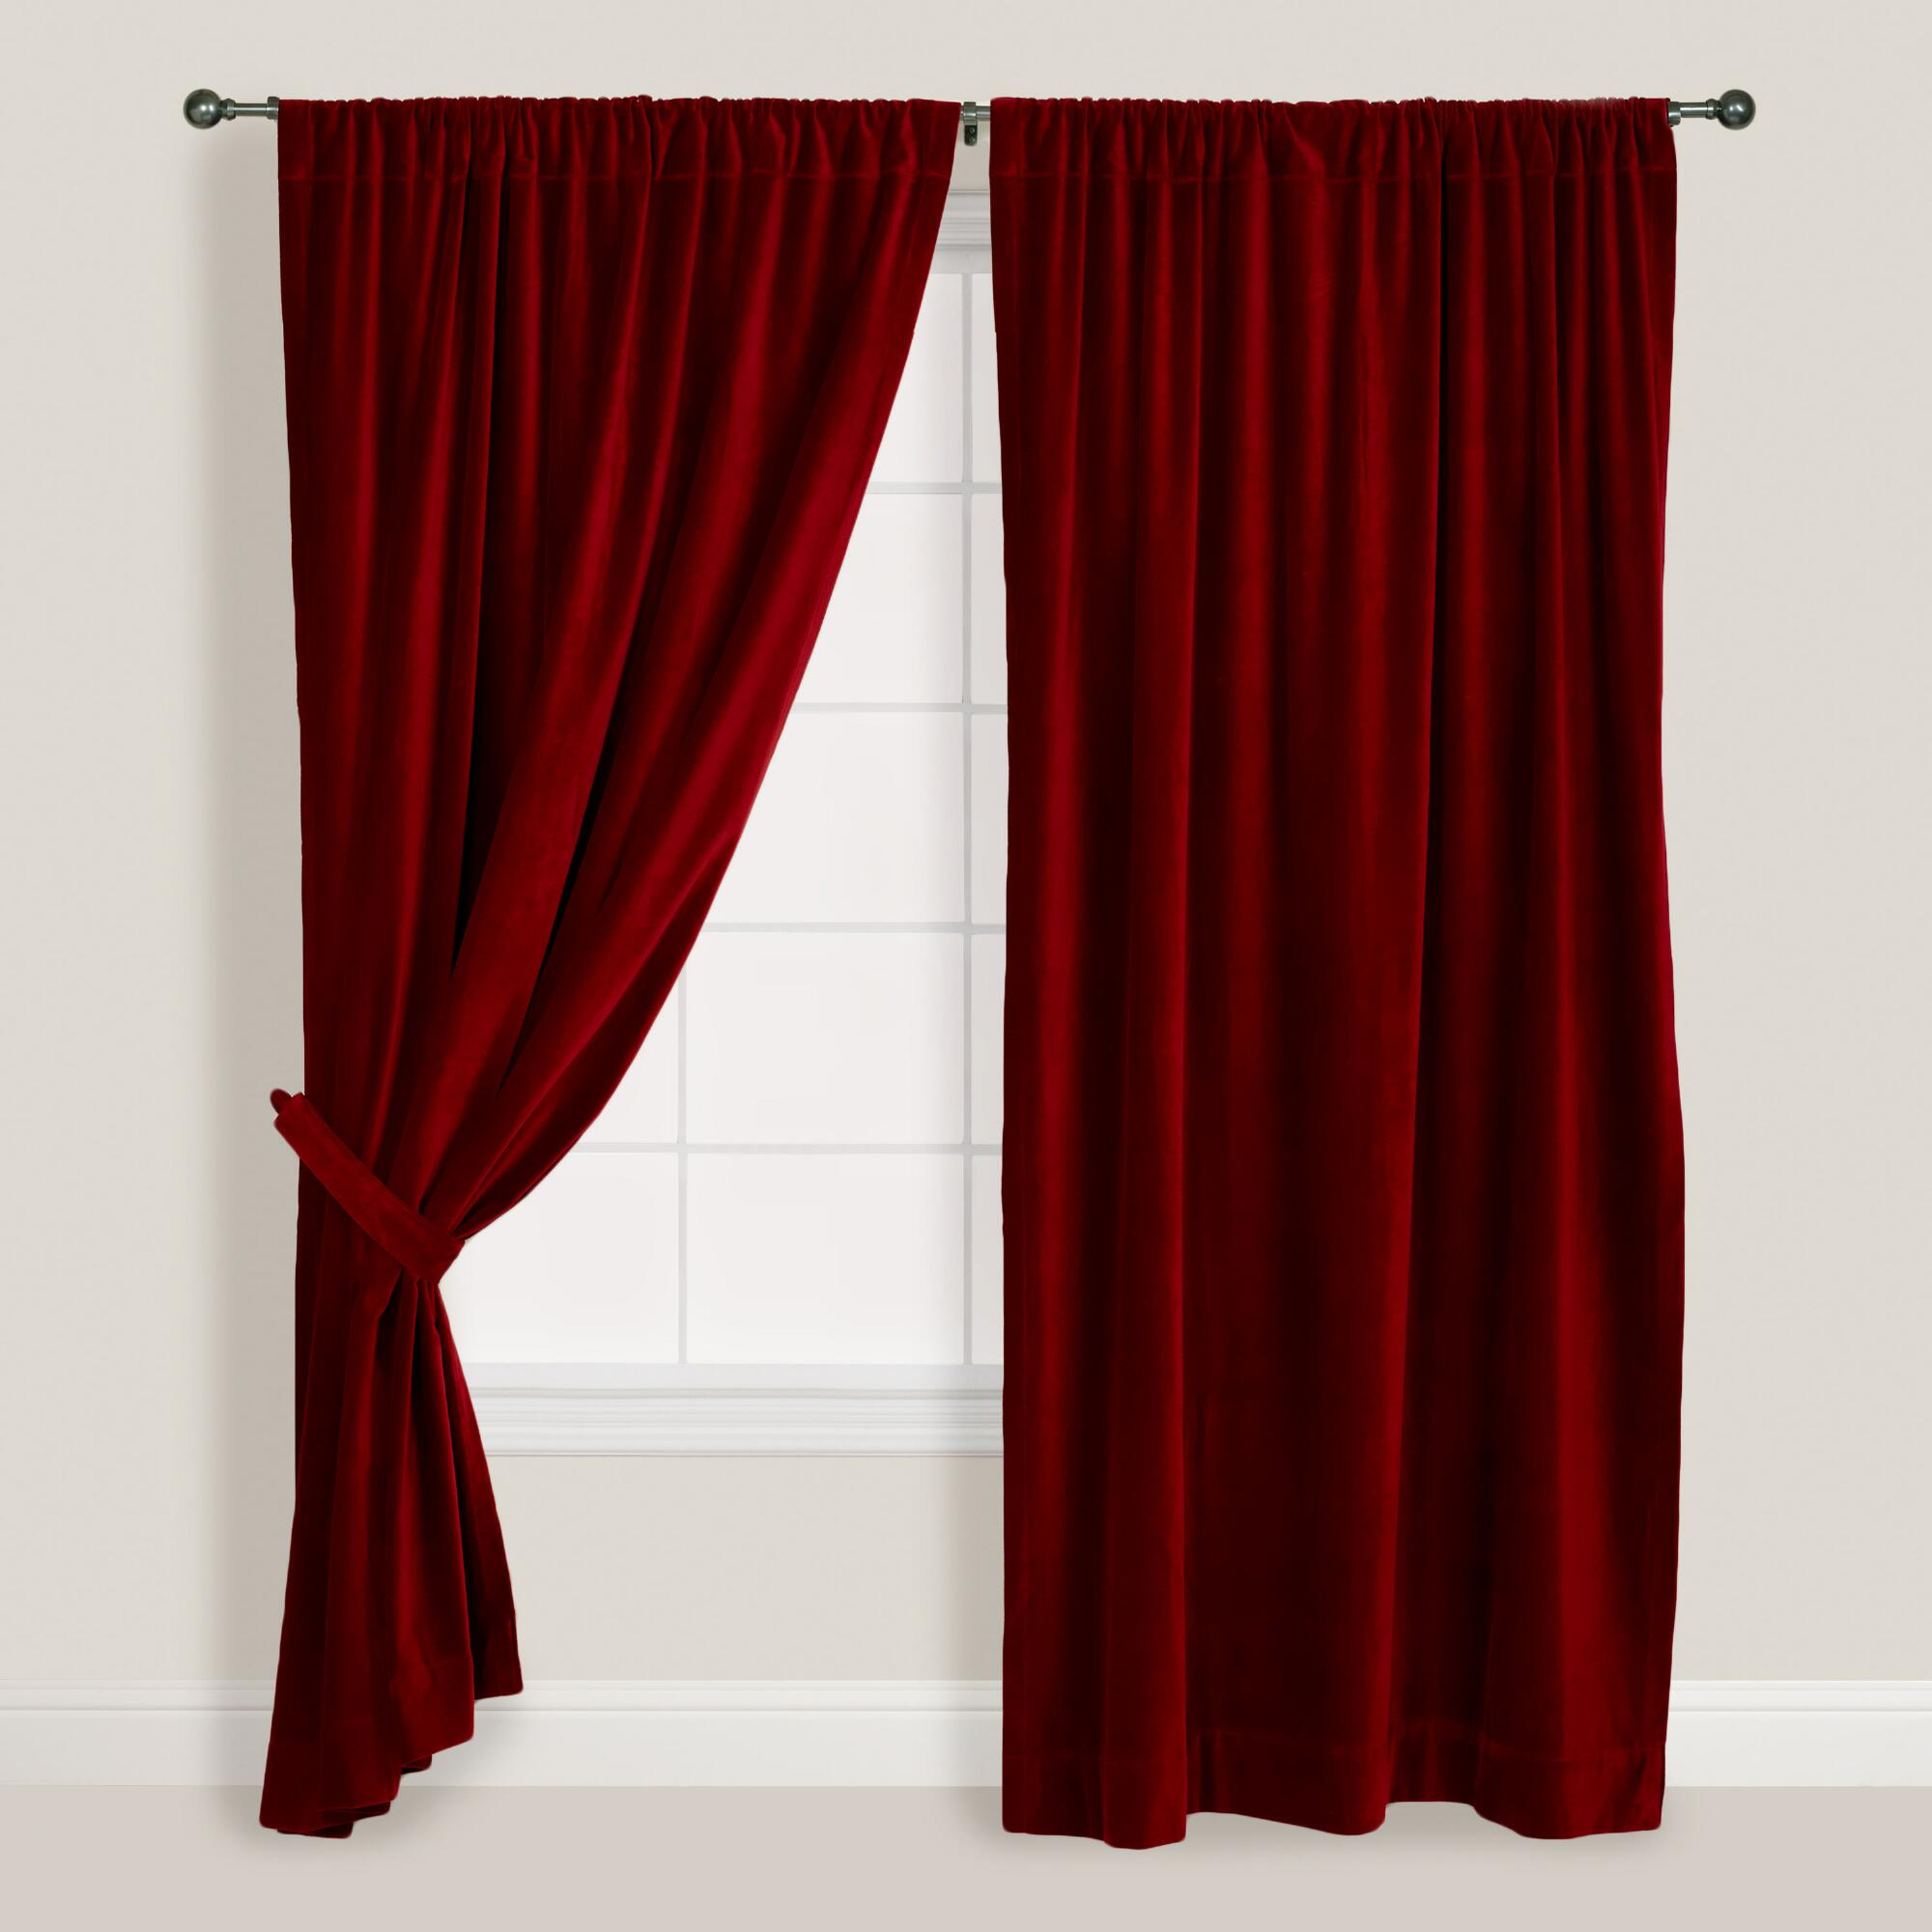 curtain red velvet ma Curtains Red Velvet with Gold... by biotom